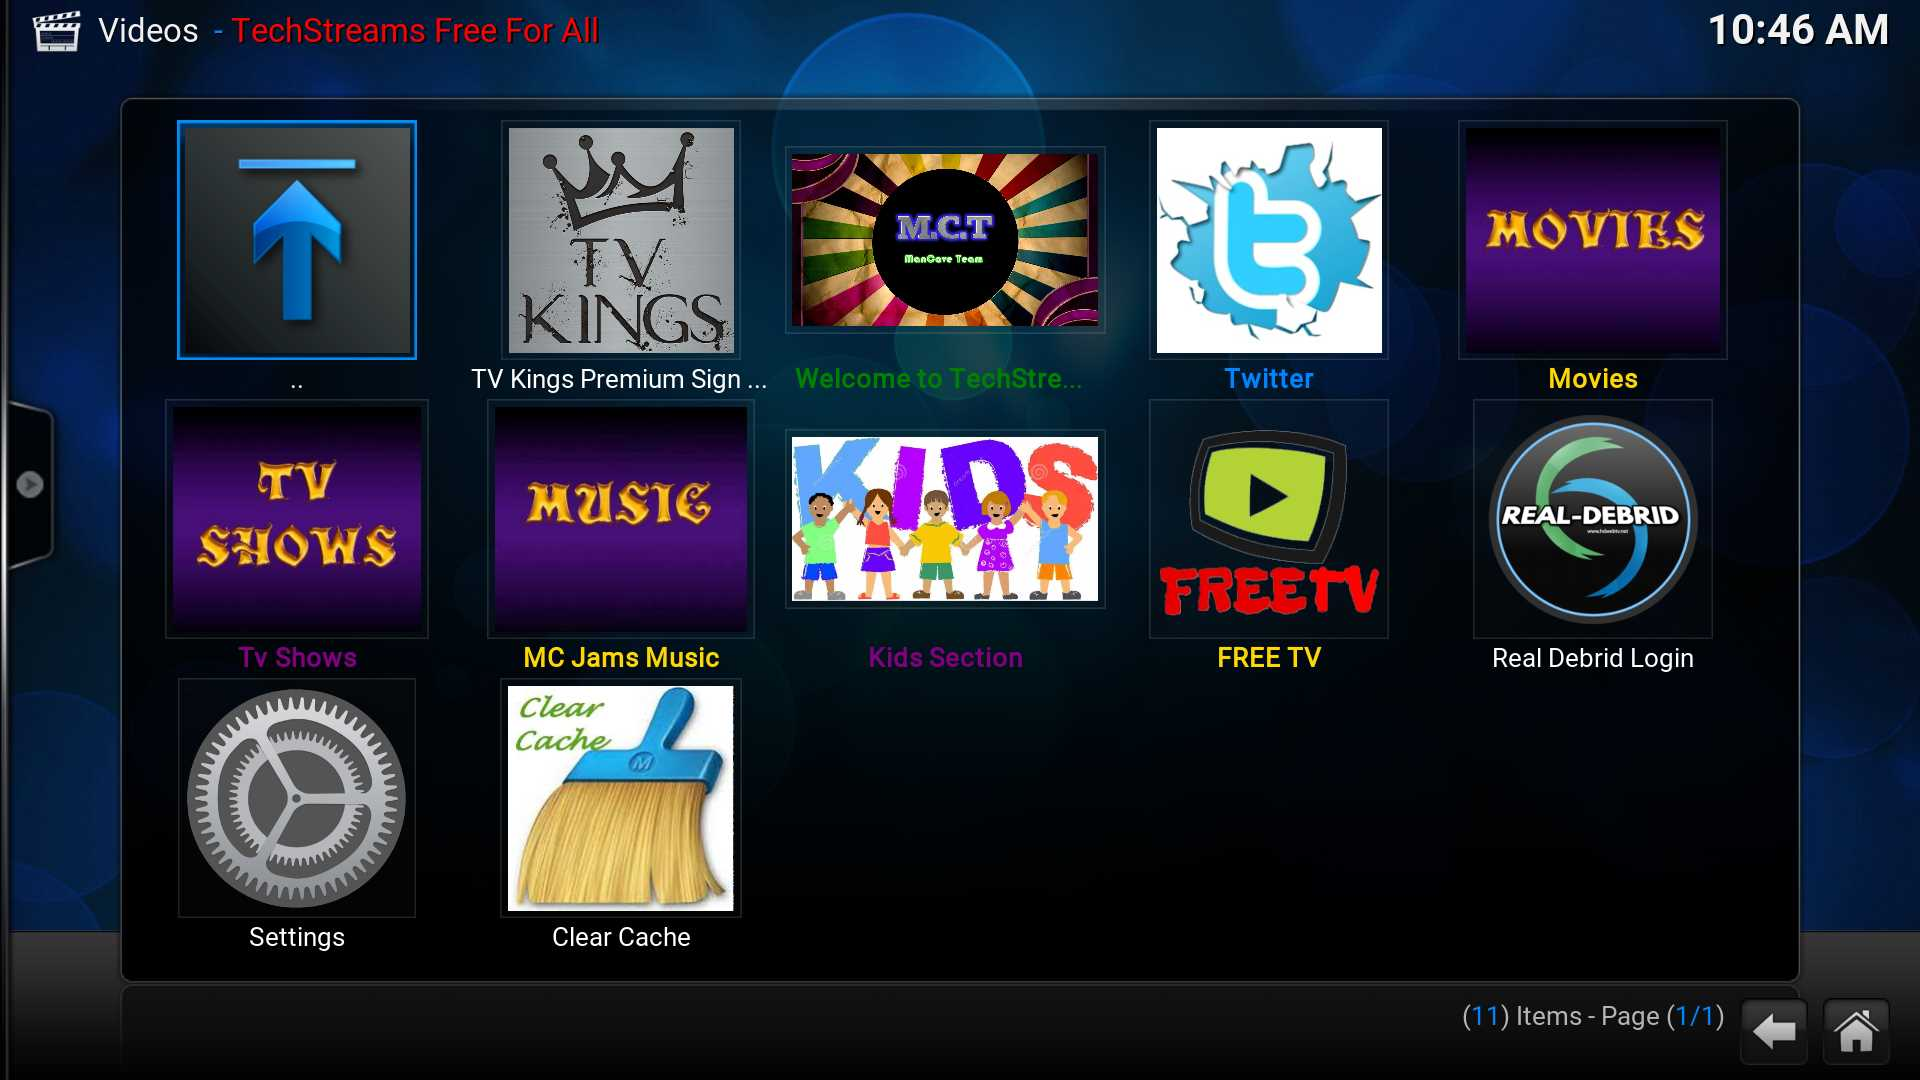 How to install Techstreams Free For All Kodi addon | Kodiapps